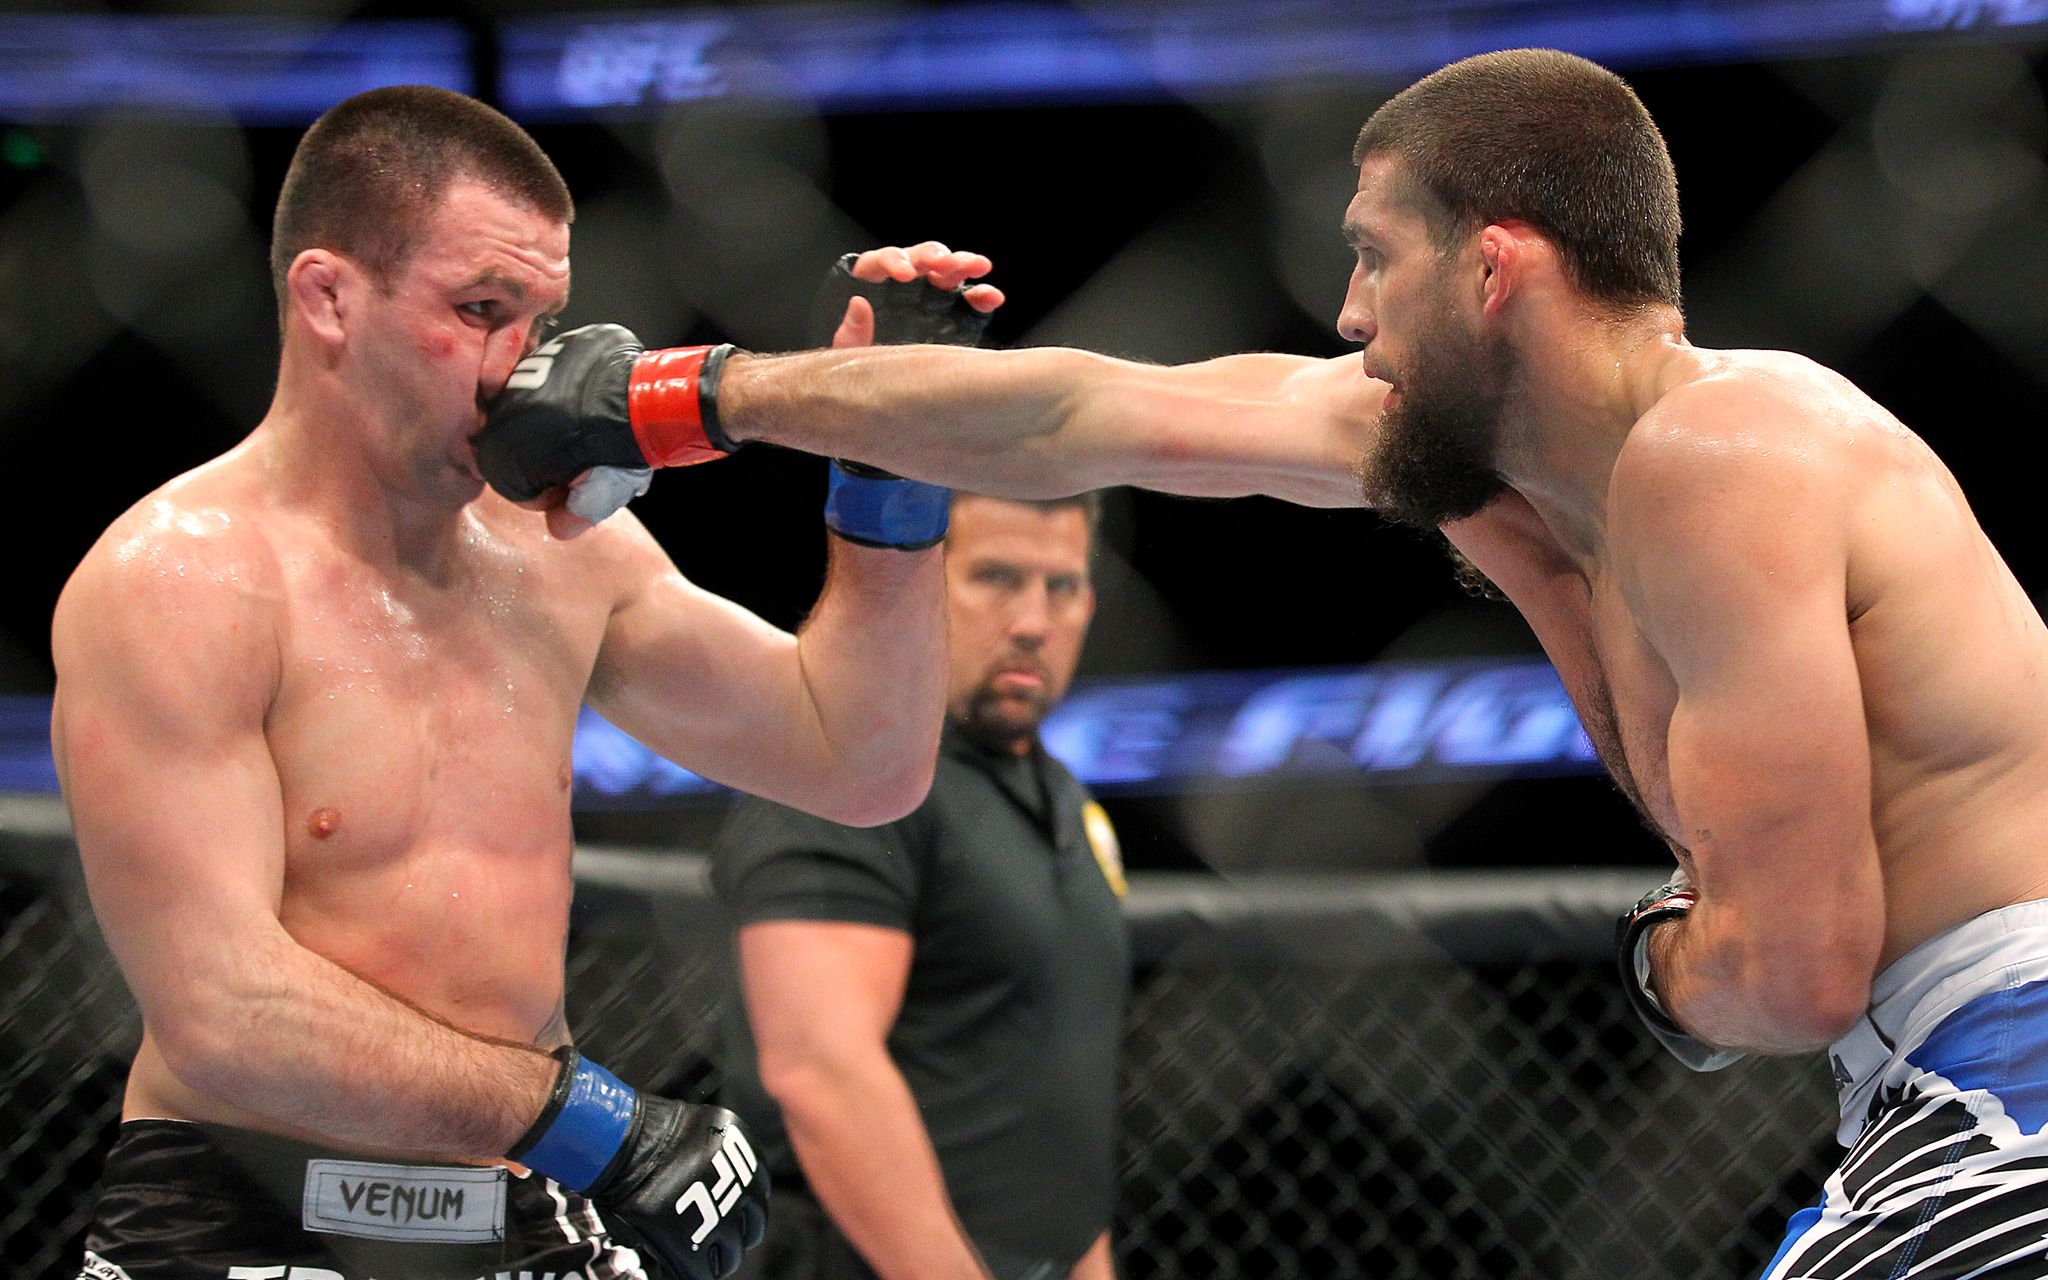 Court McGee and Josh Neer